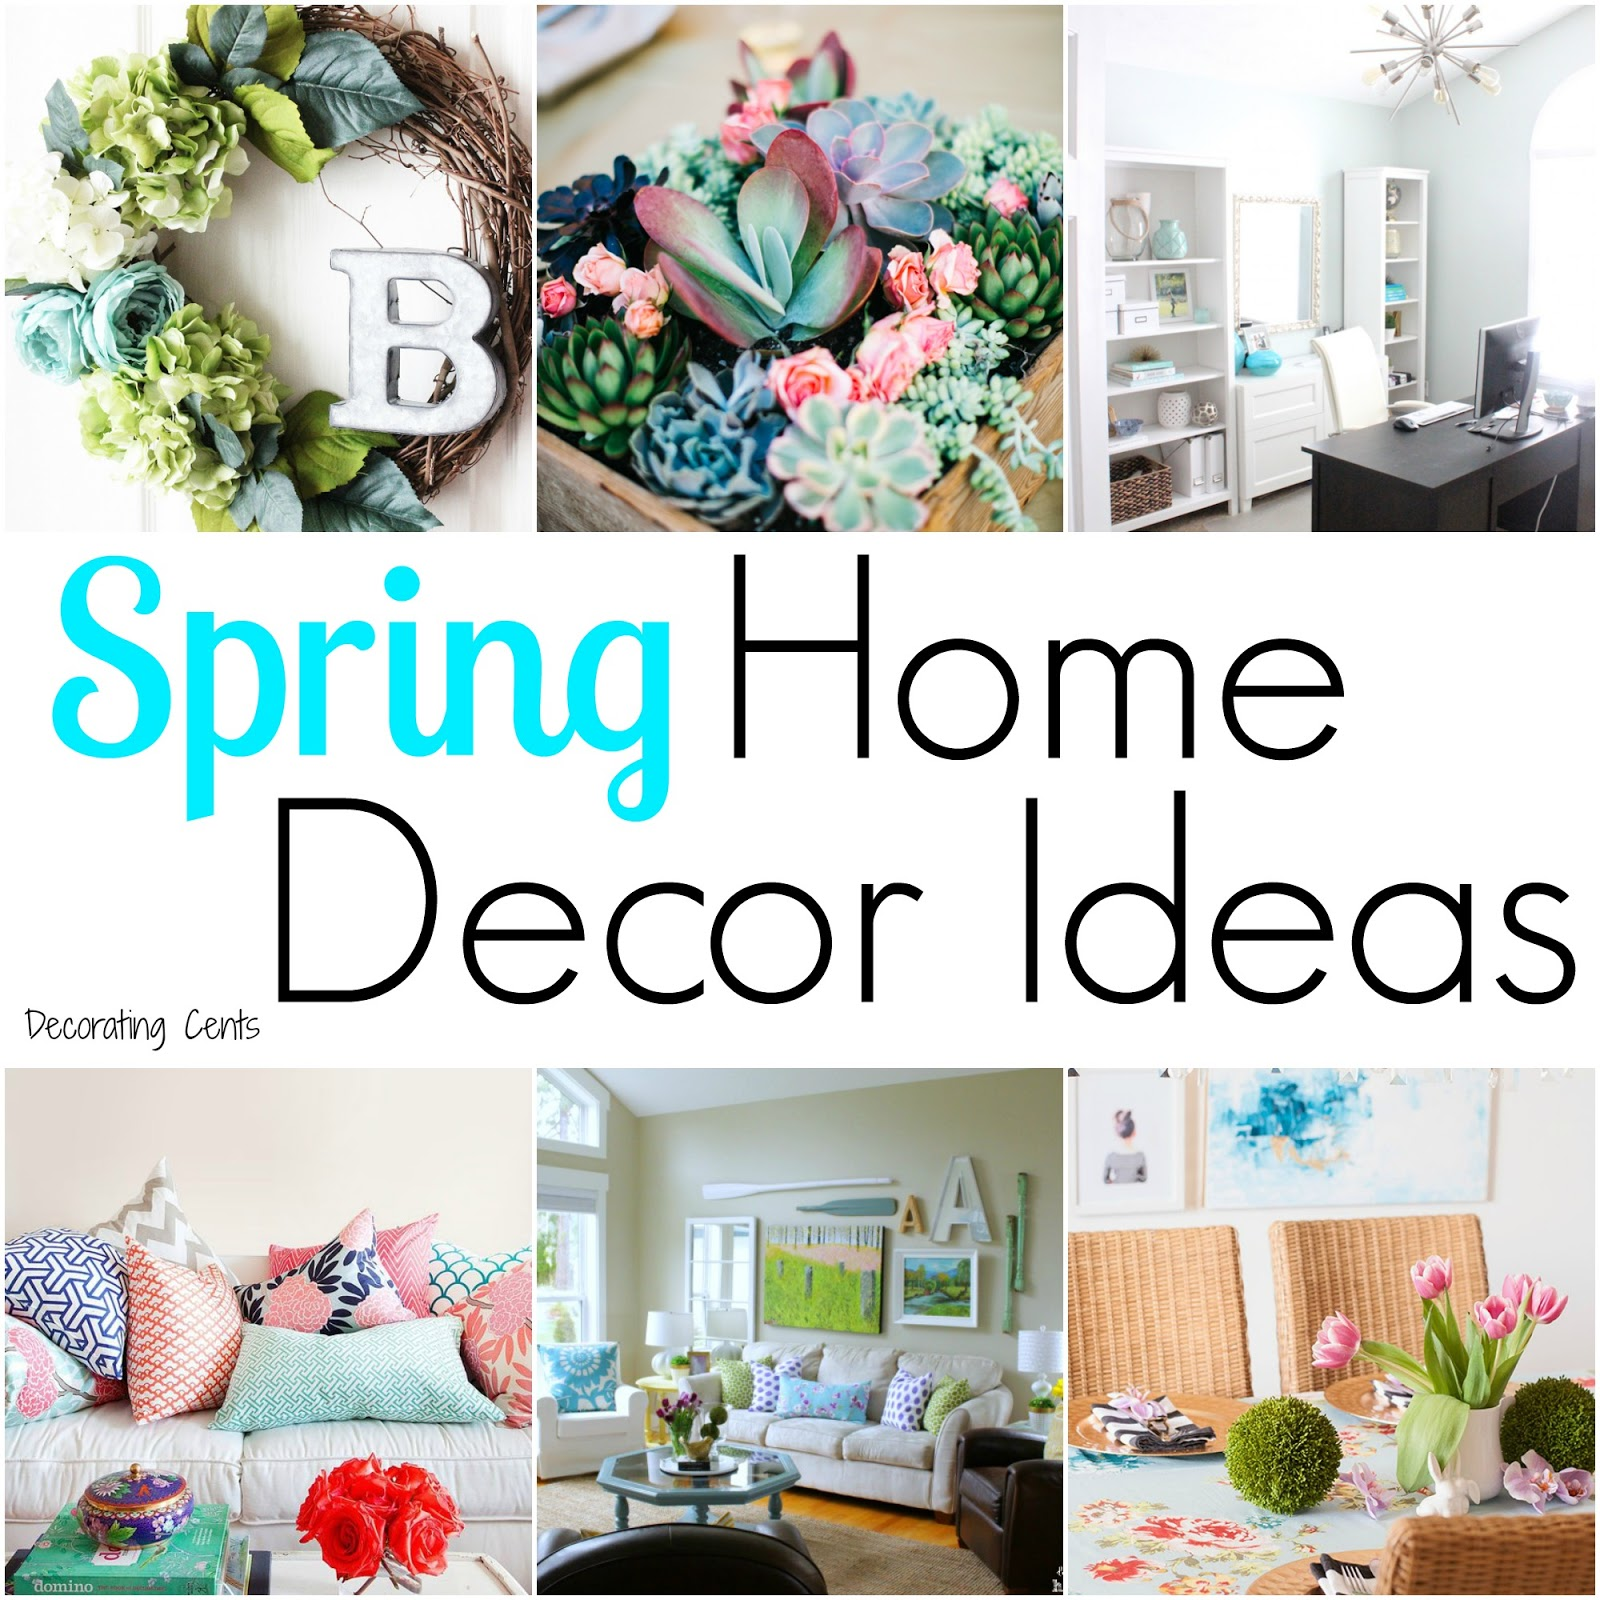 Decorating cents spring home decor ideas for House and decor